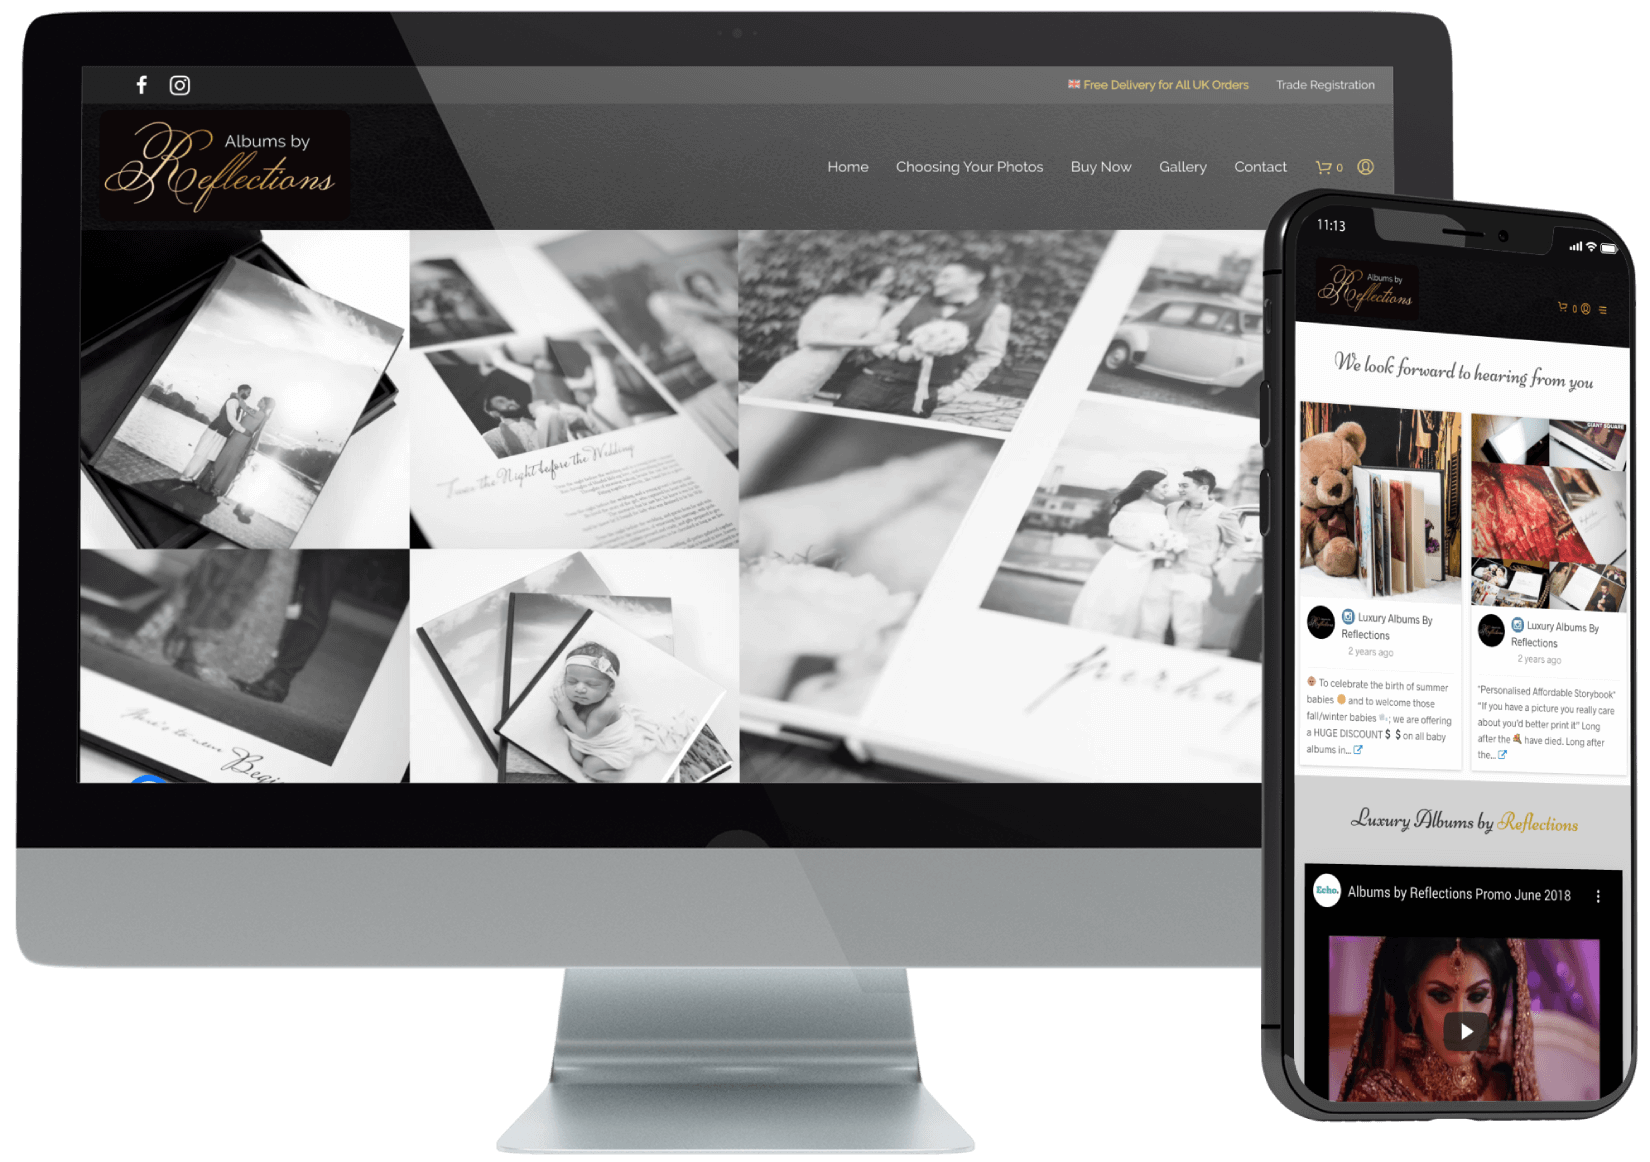 Albums by Reflections eCommerce